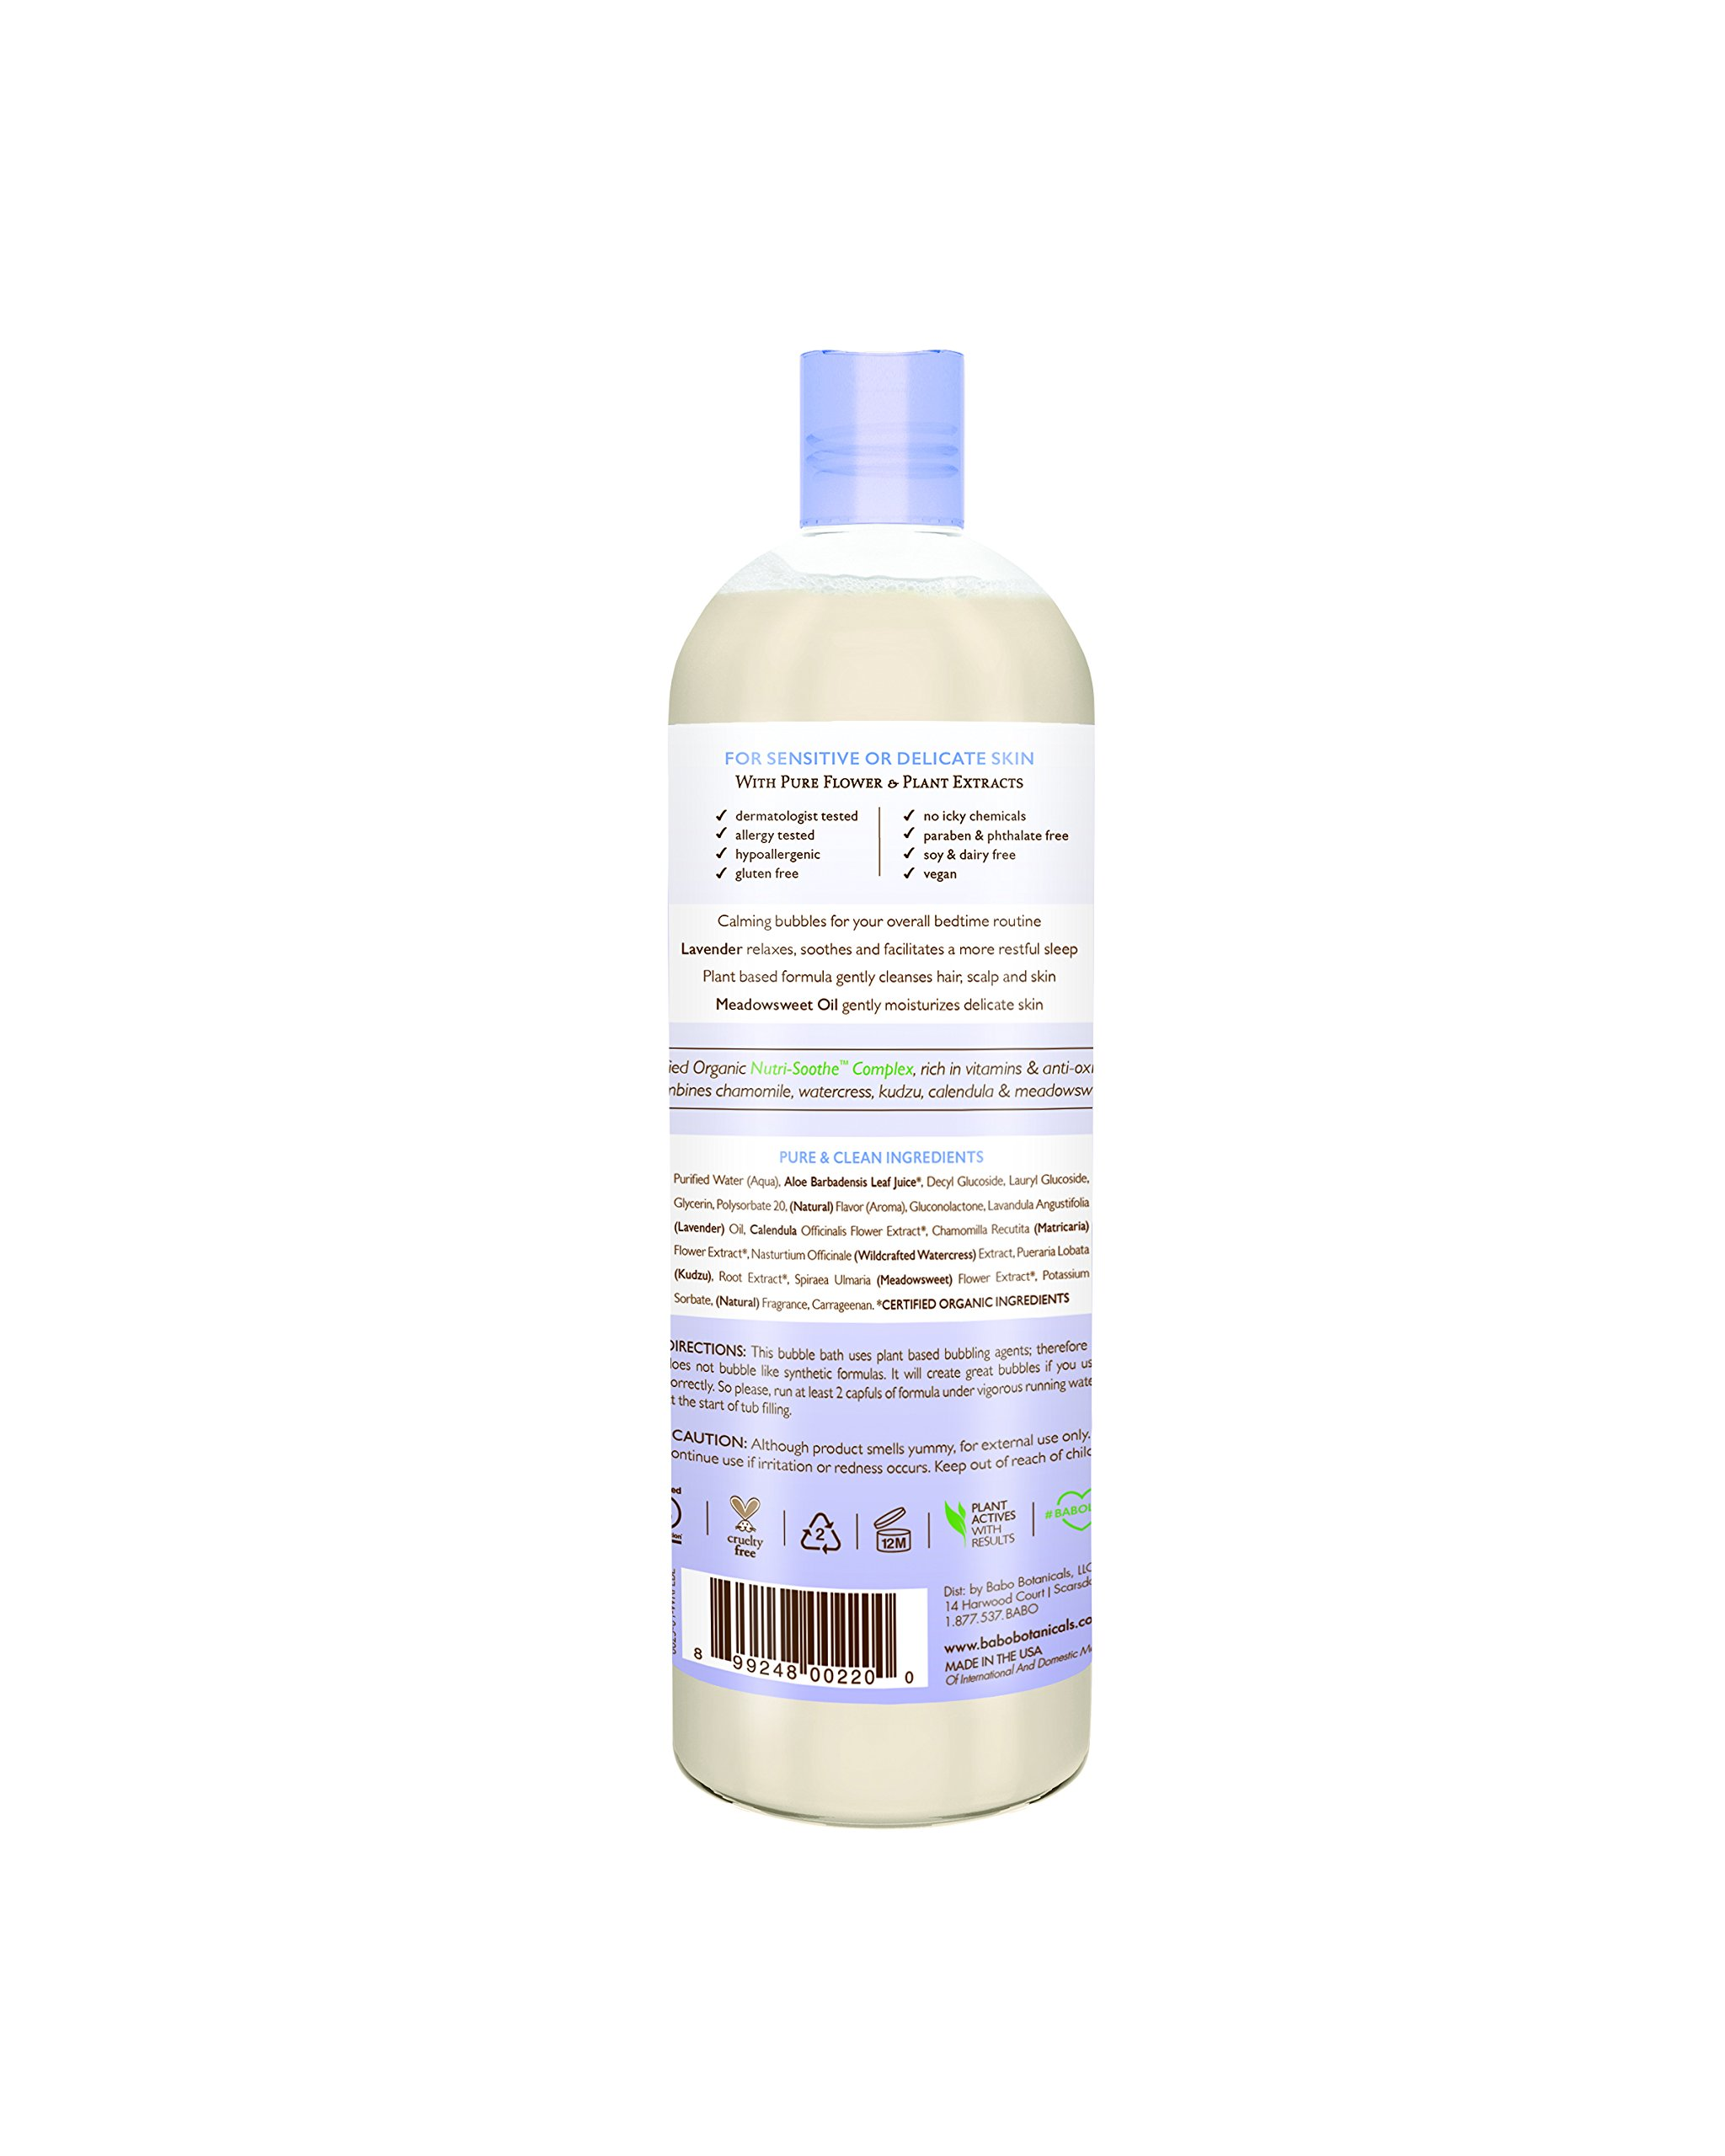 Babo Botanicals Lavender Meadowsweet Calming Baby Bubble Bath & Wash, 15 ounces by Babo Botanicals (Image #3)